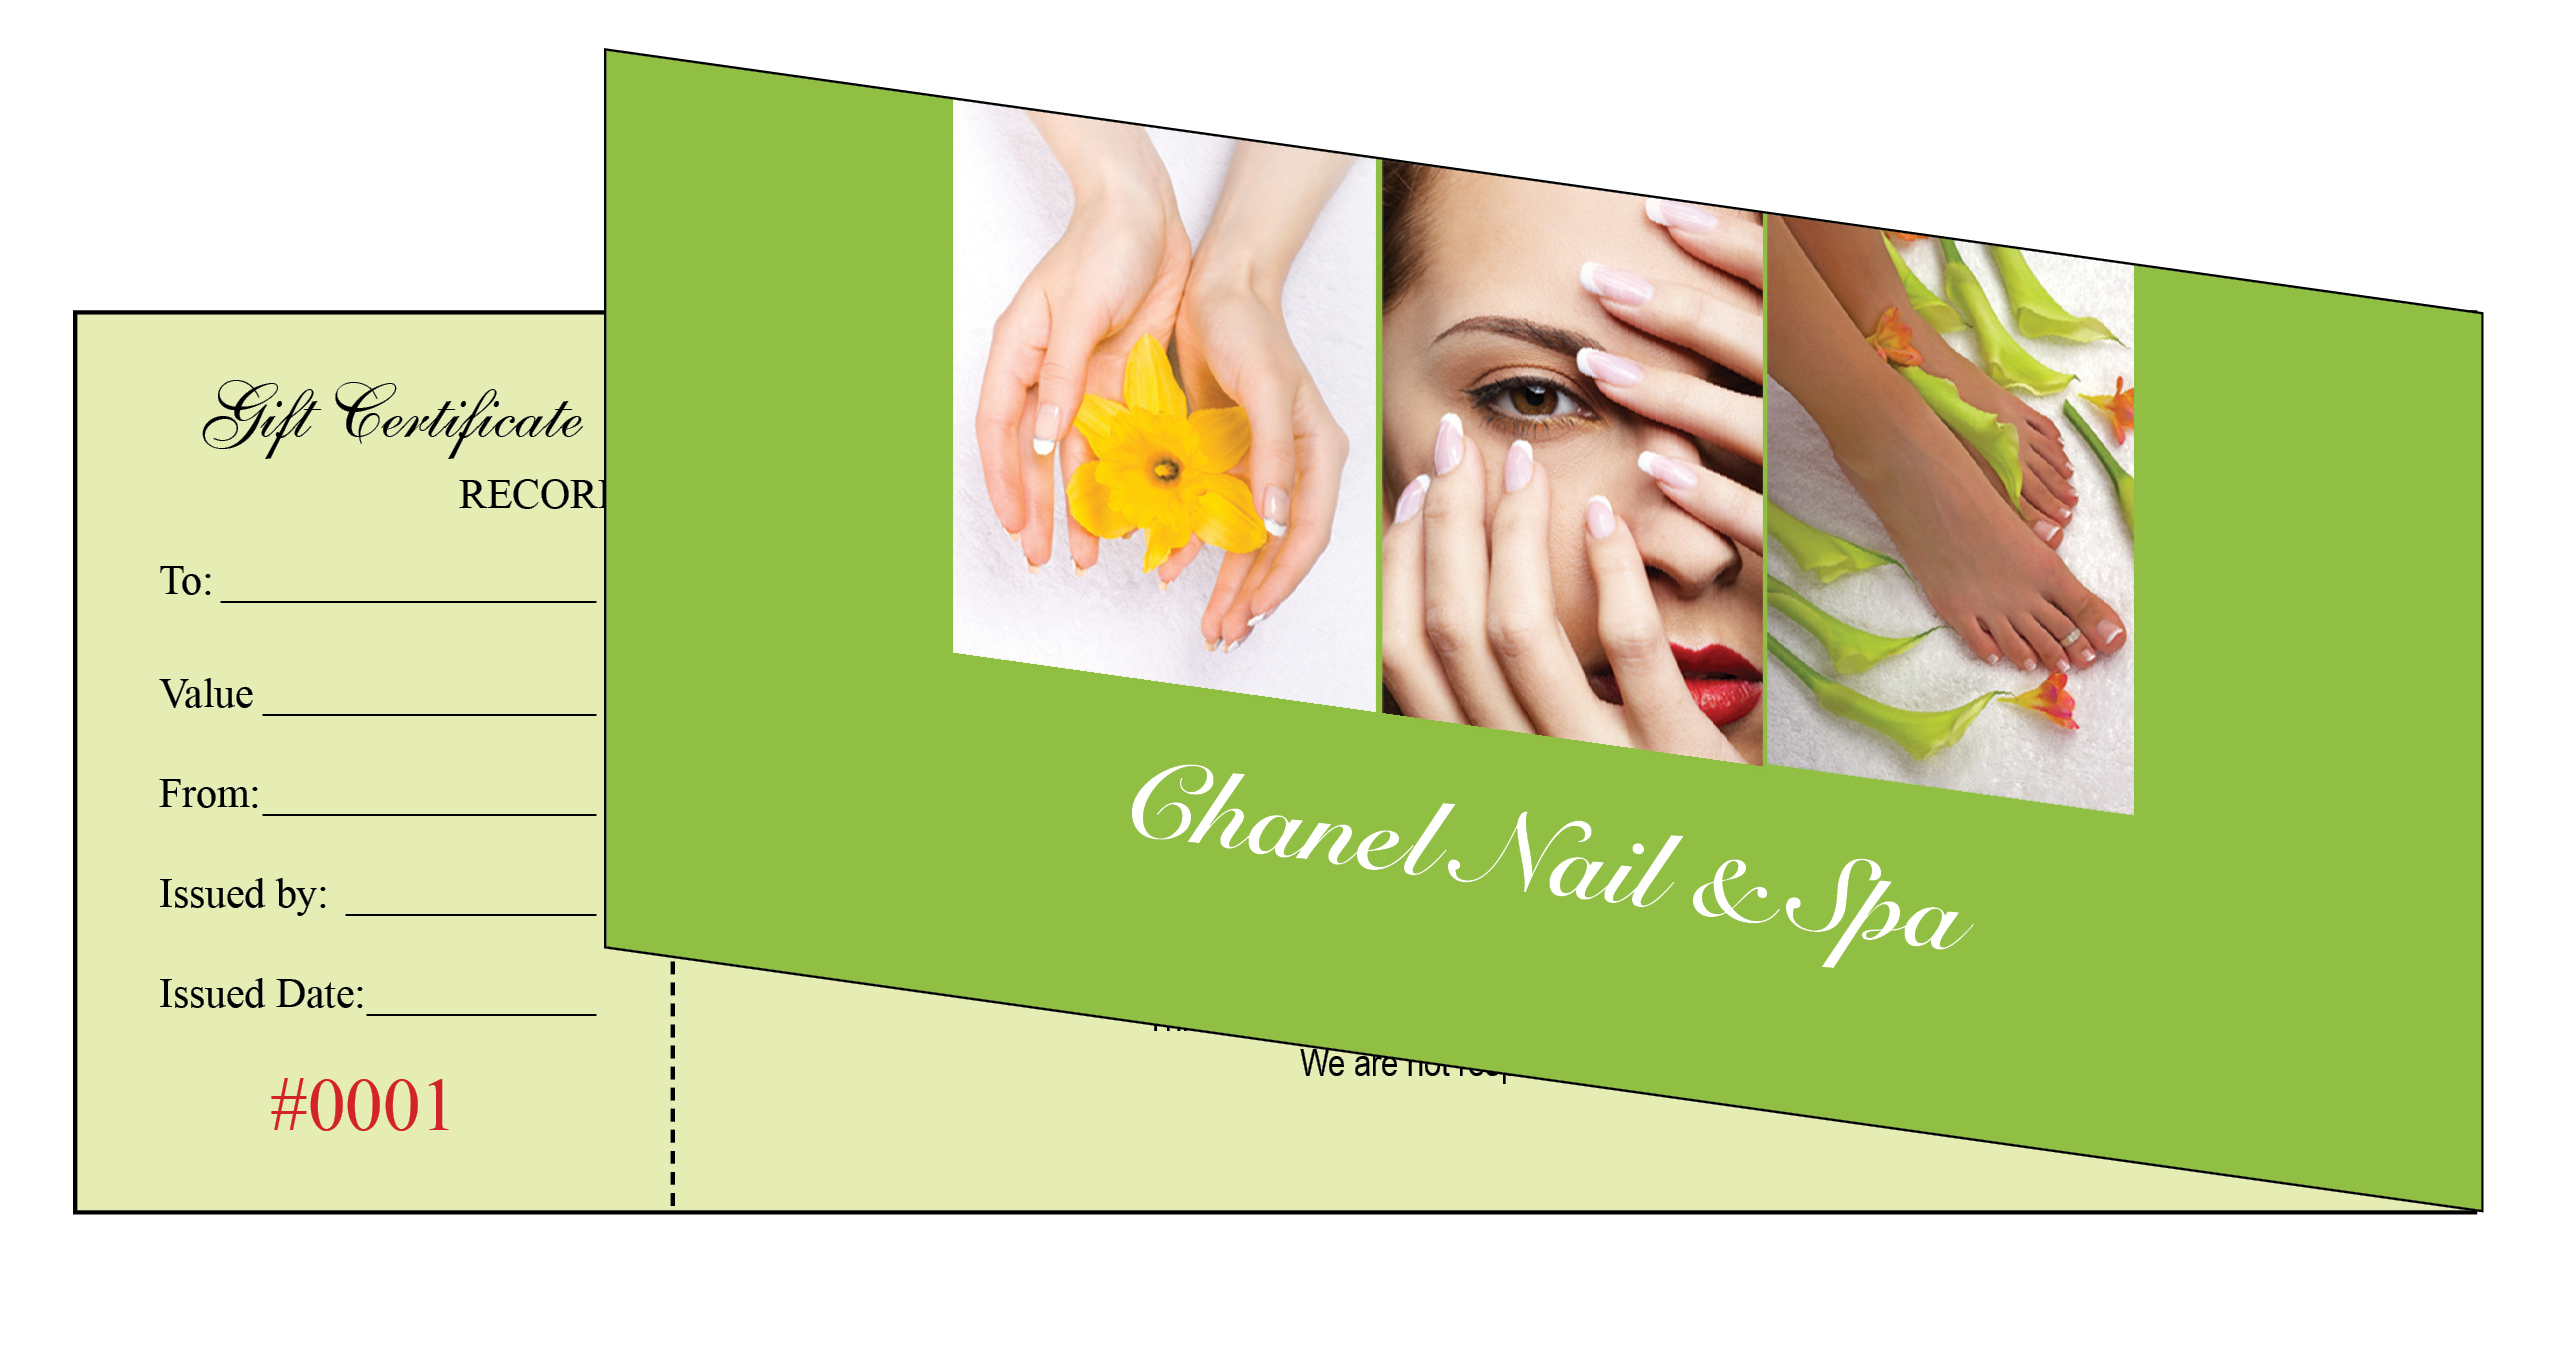 Nail spa gift certificate best nails 2018 gift certificates printing for nail salon xflitez Image collections